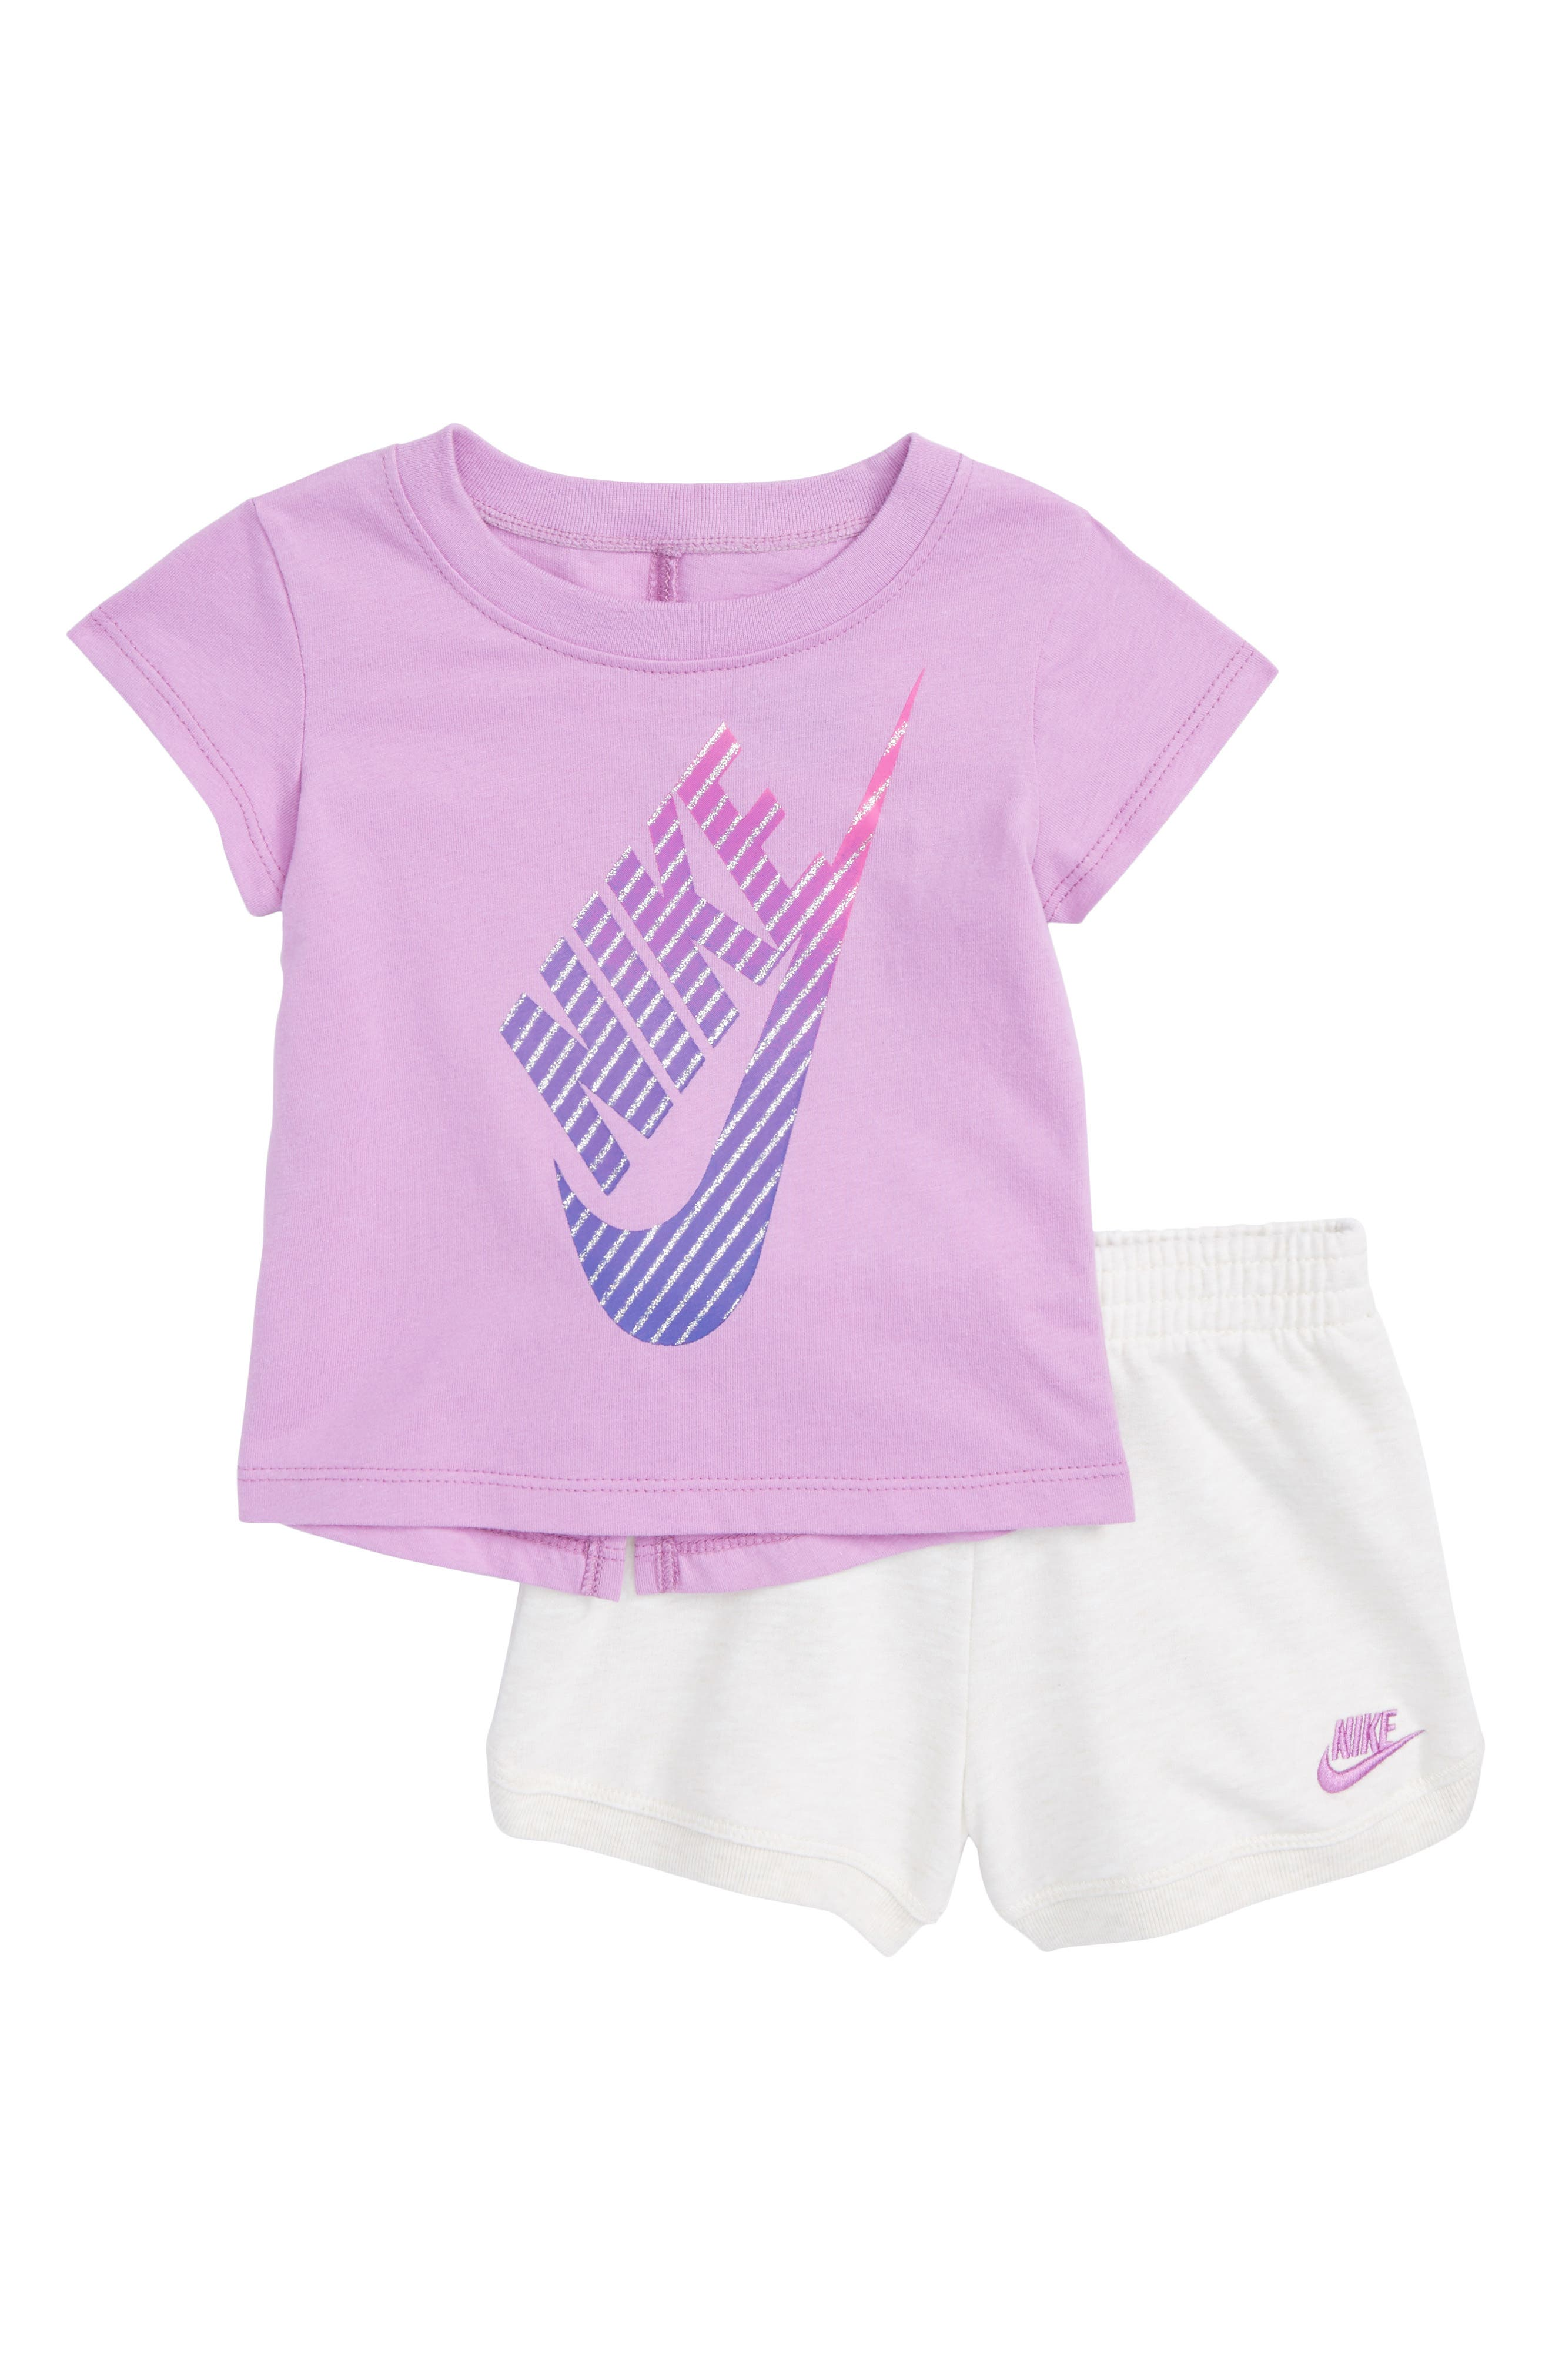 Nike Gradient Futura Tee & Shorts Set (Baby Girls)